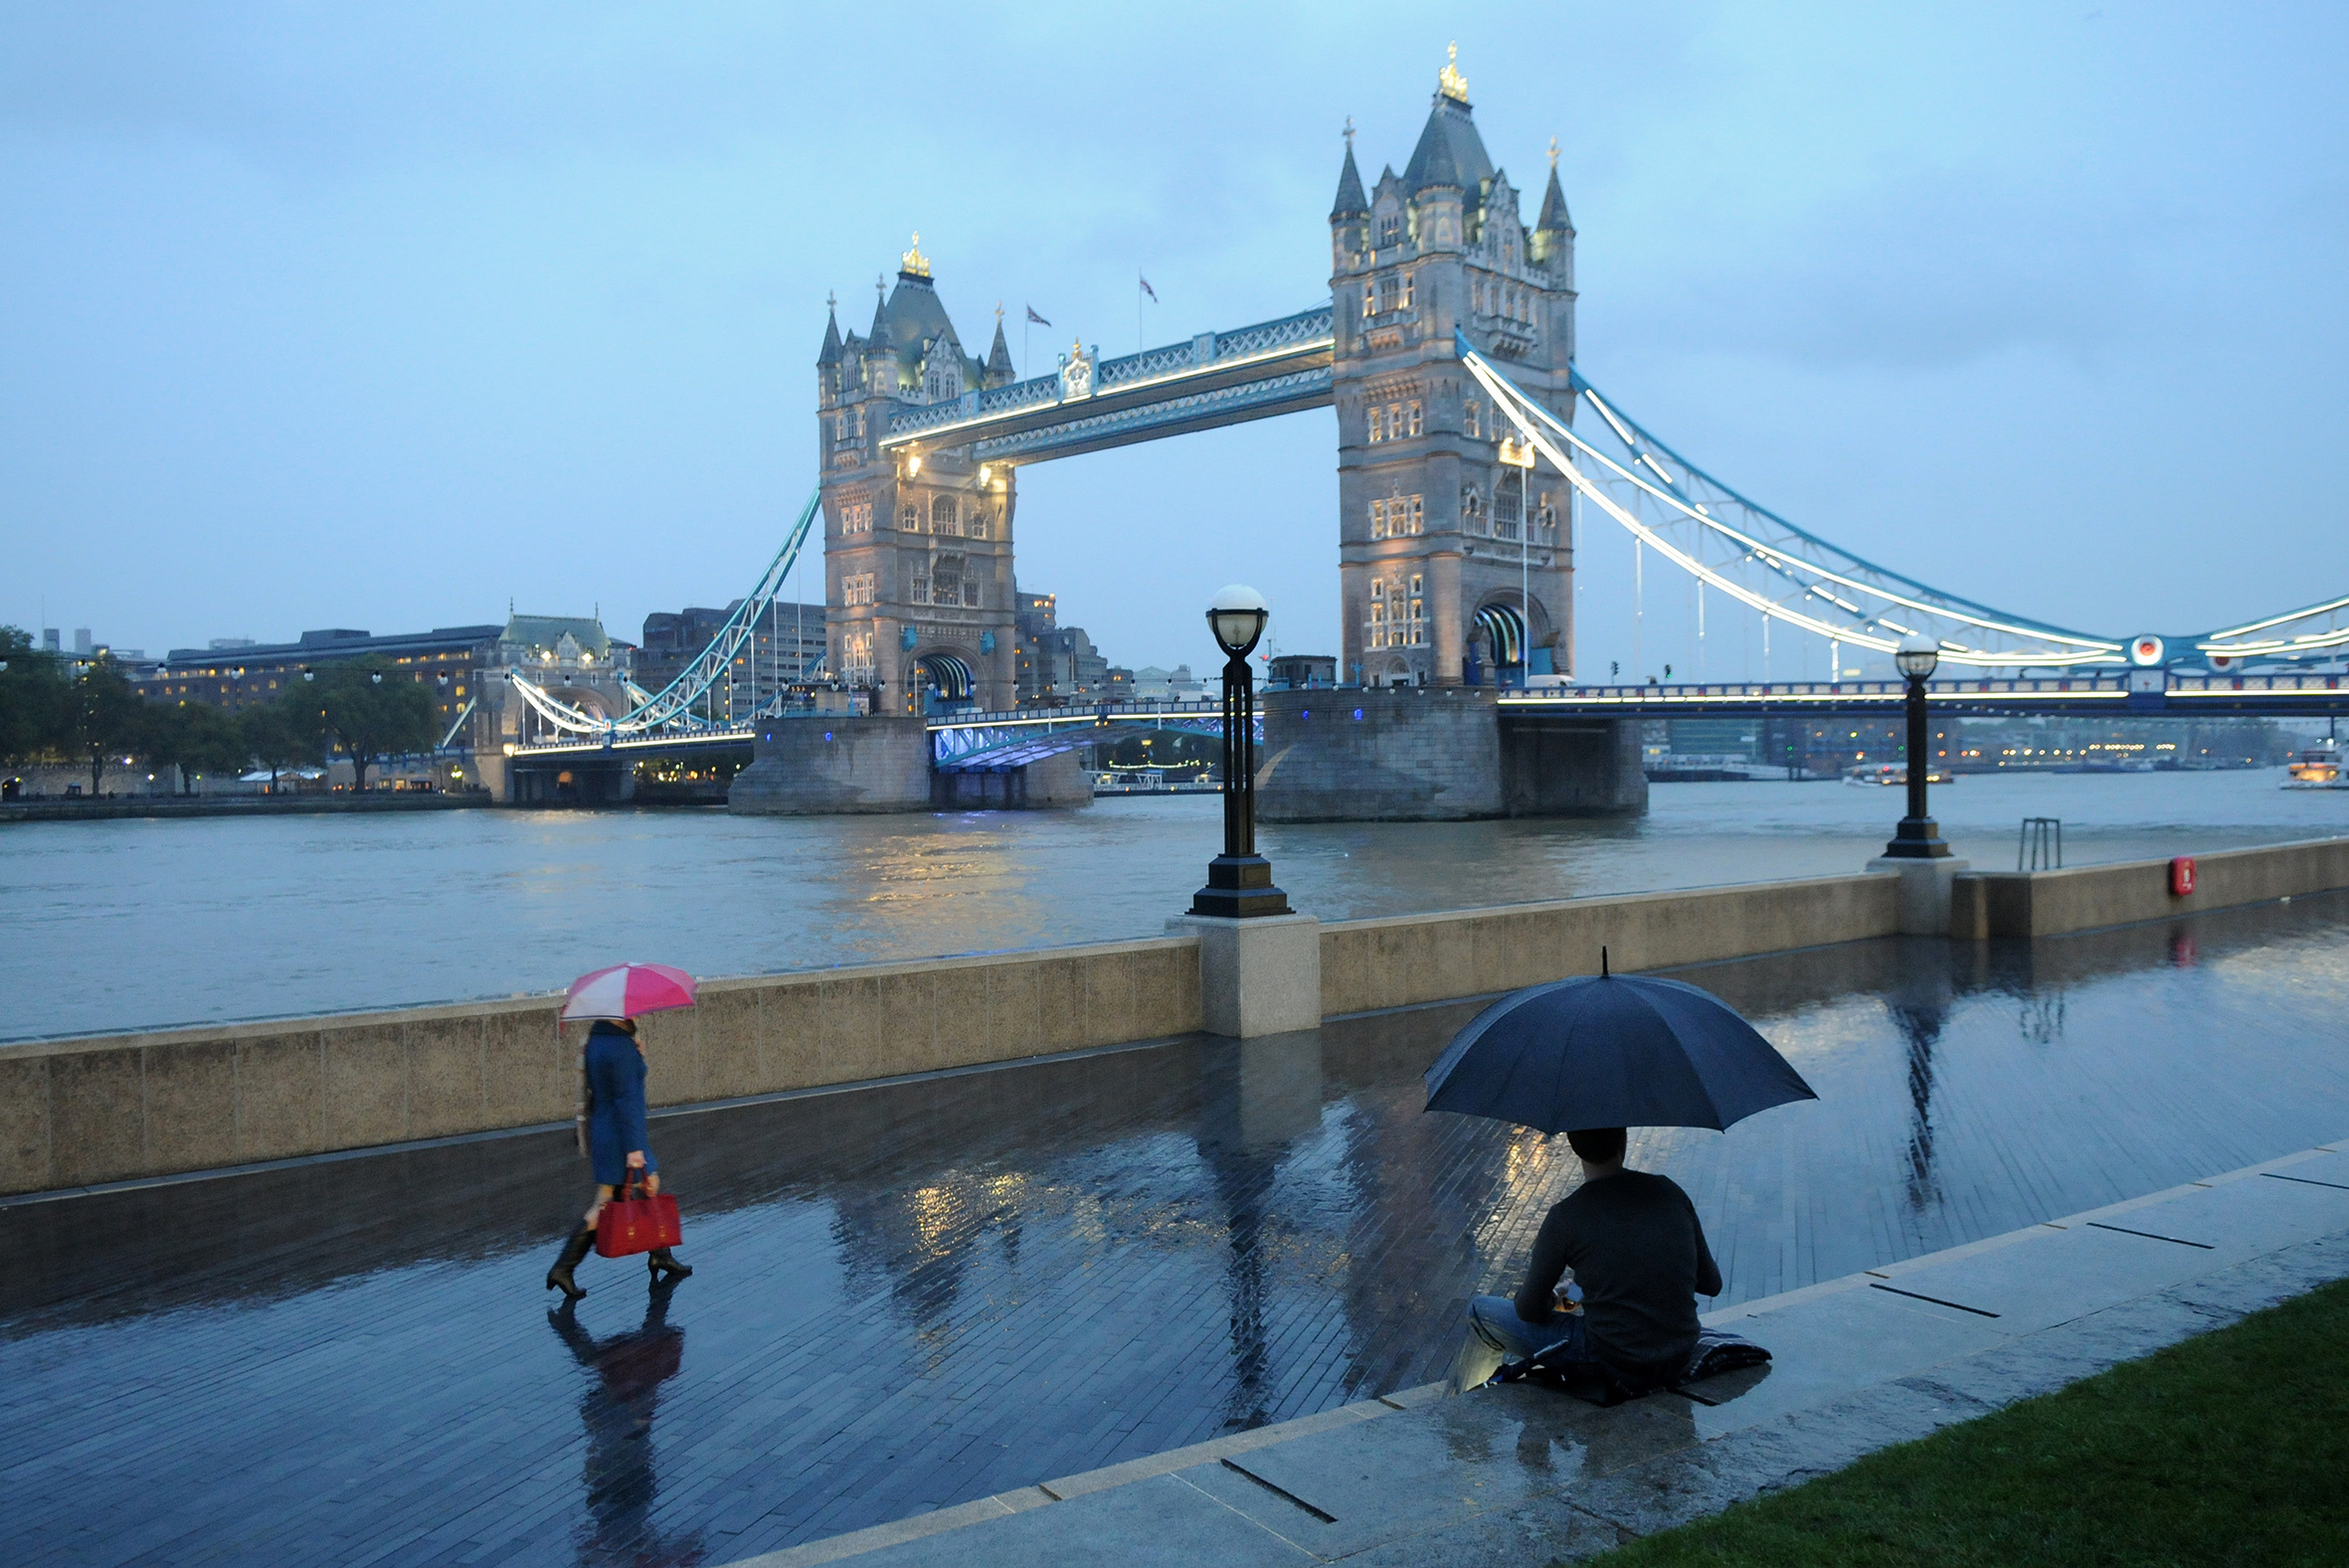 Glass barriers on the Thames are going to shield London from future floods